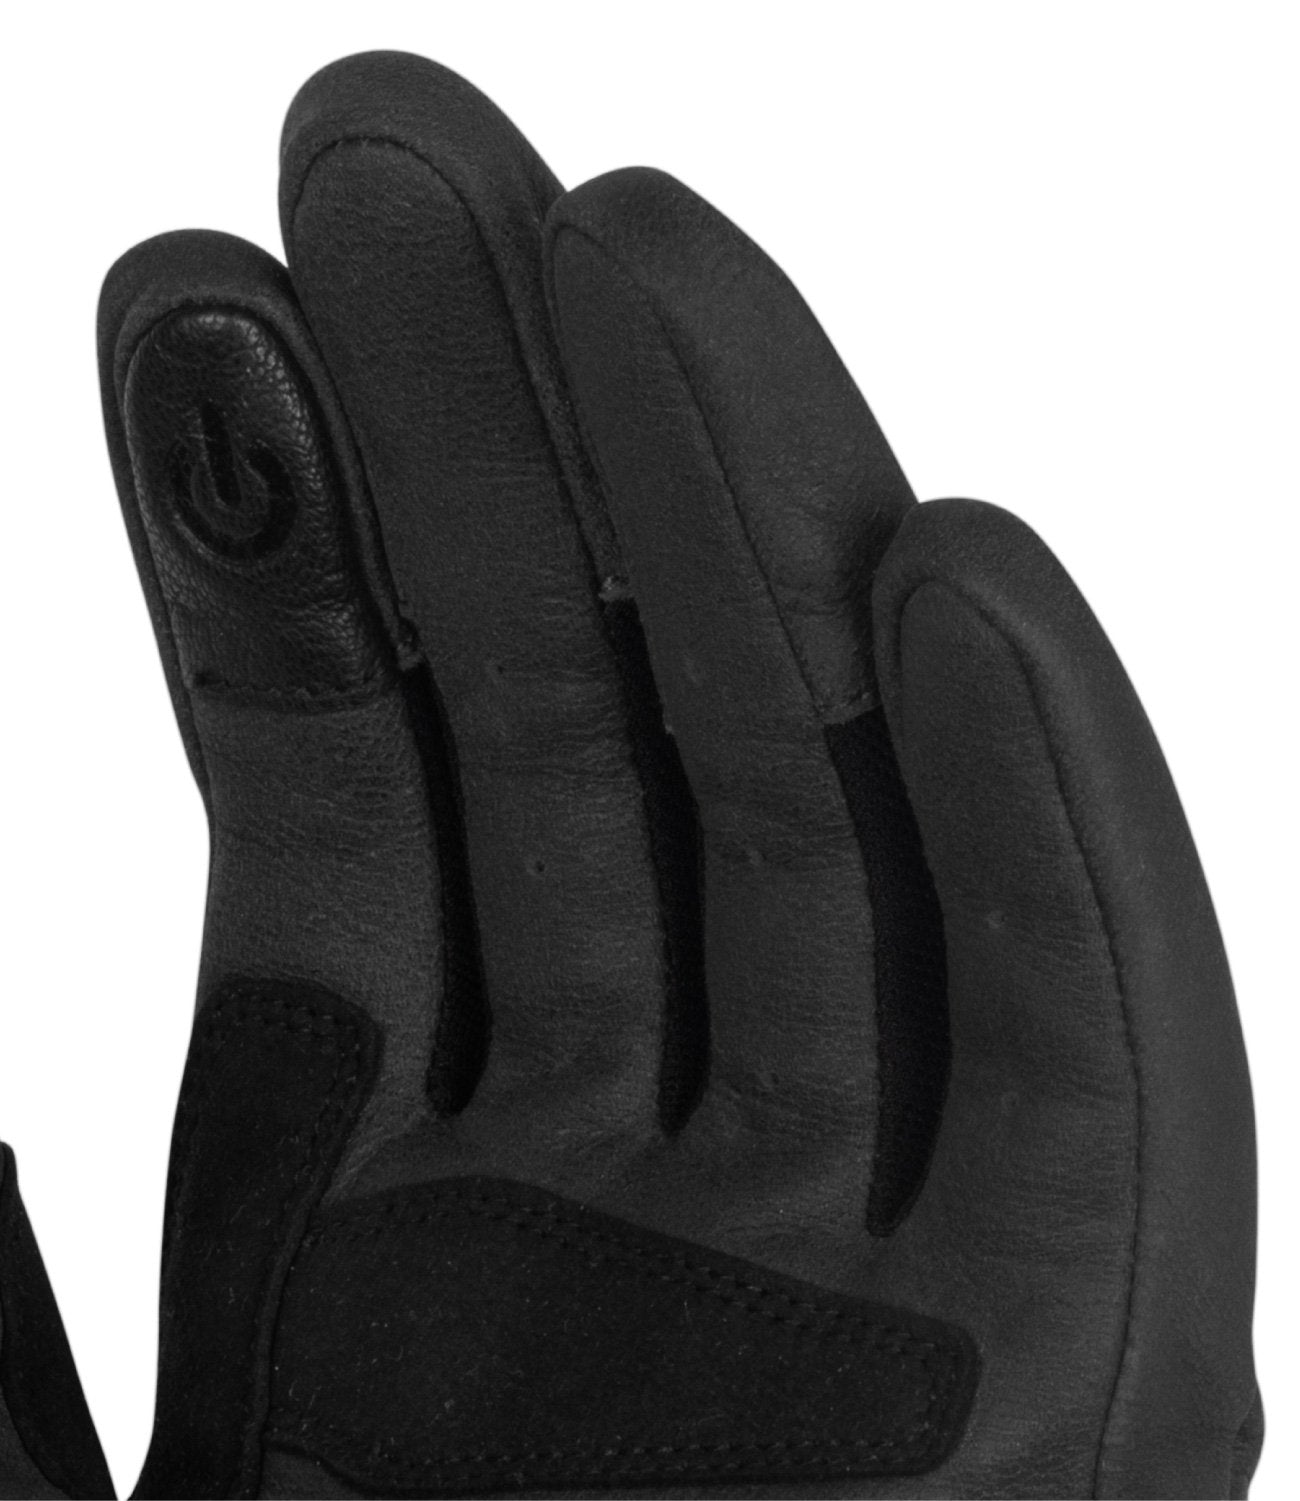 Rynox Urban Gloves Black 8